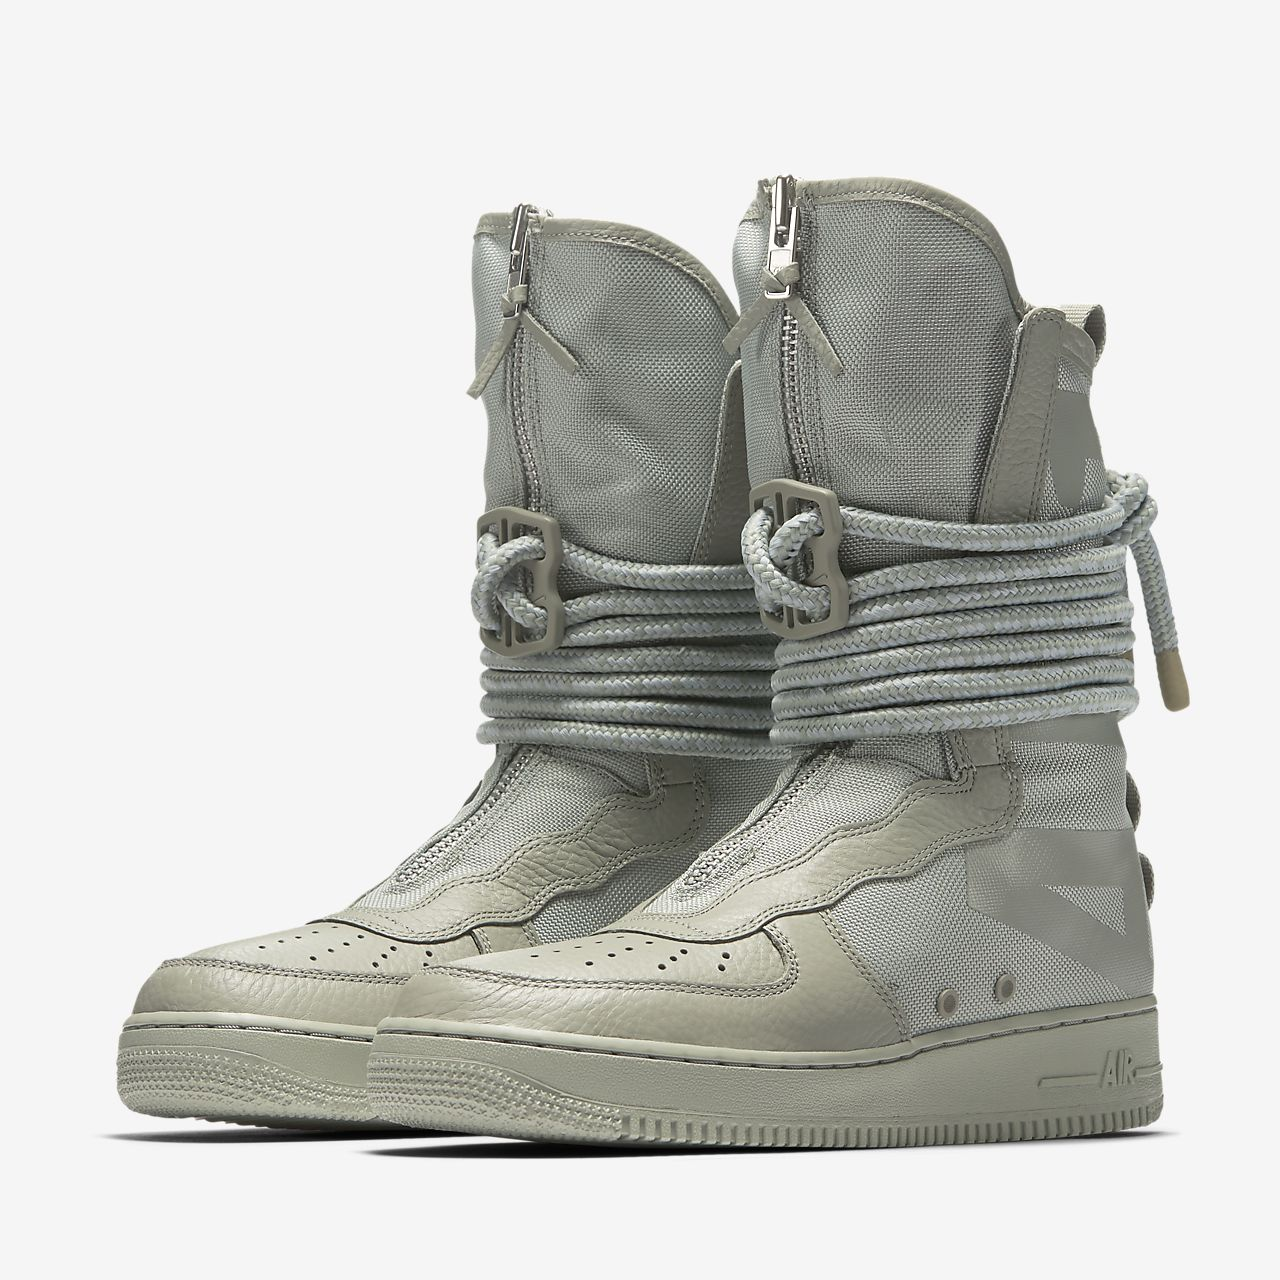 Nike Boots Sf Air Force 1 yeZHXldoHH